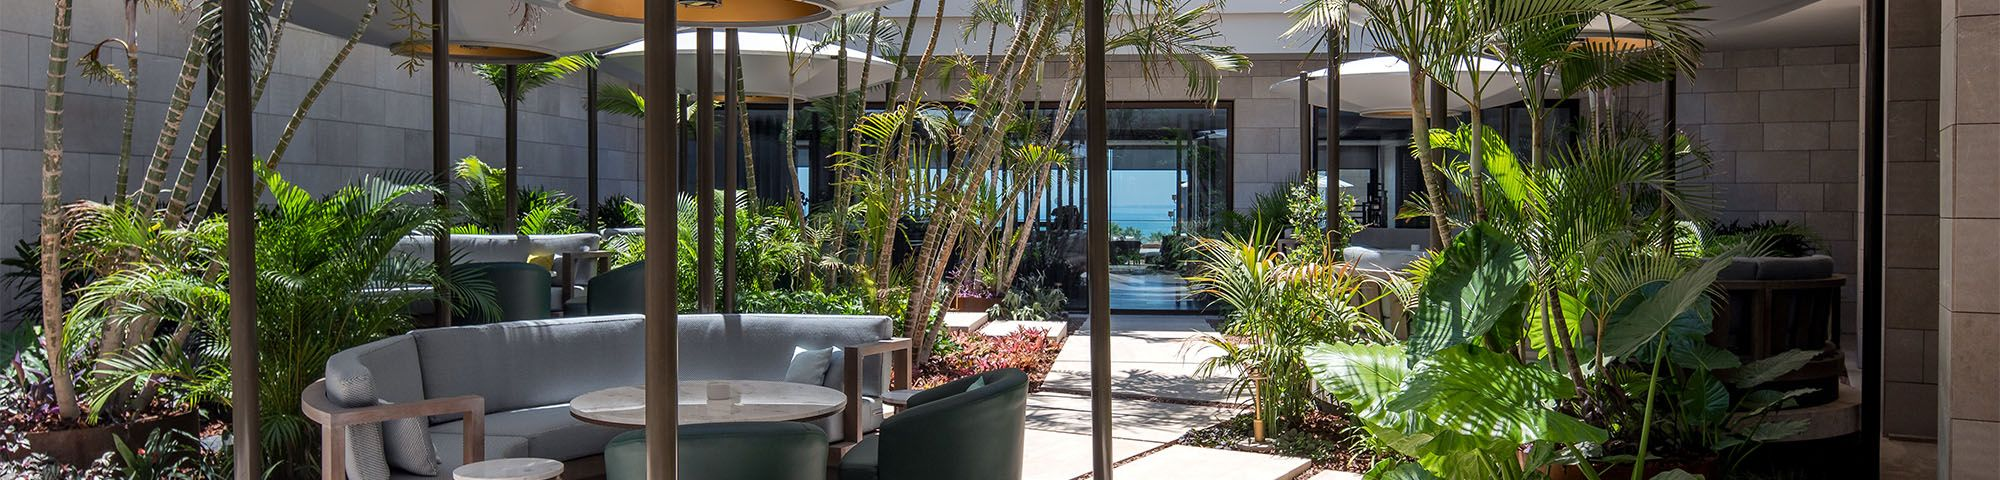 The Lobby Bar Garden By Day